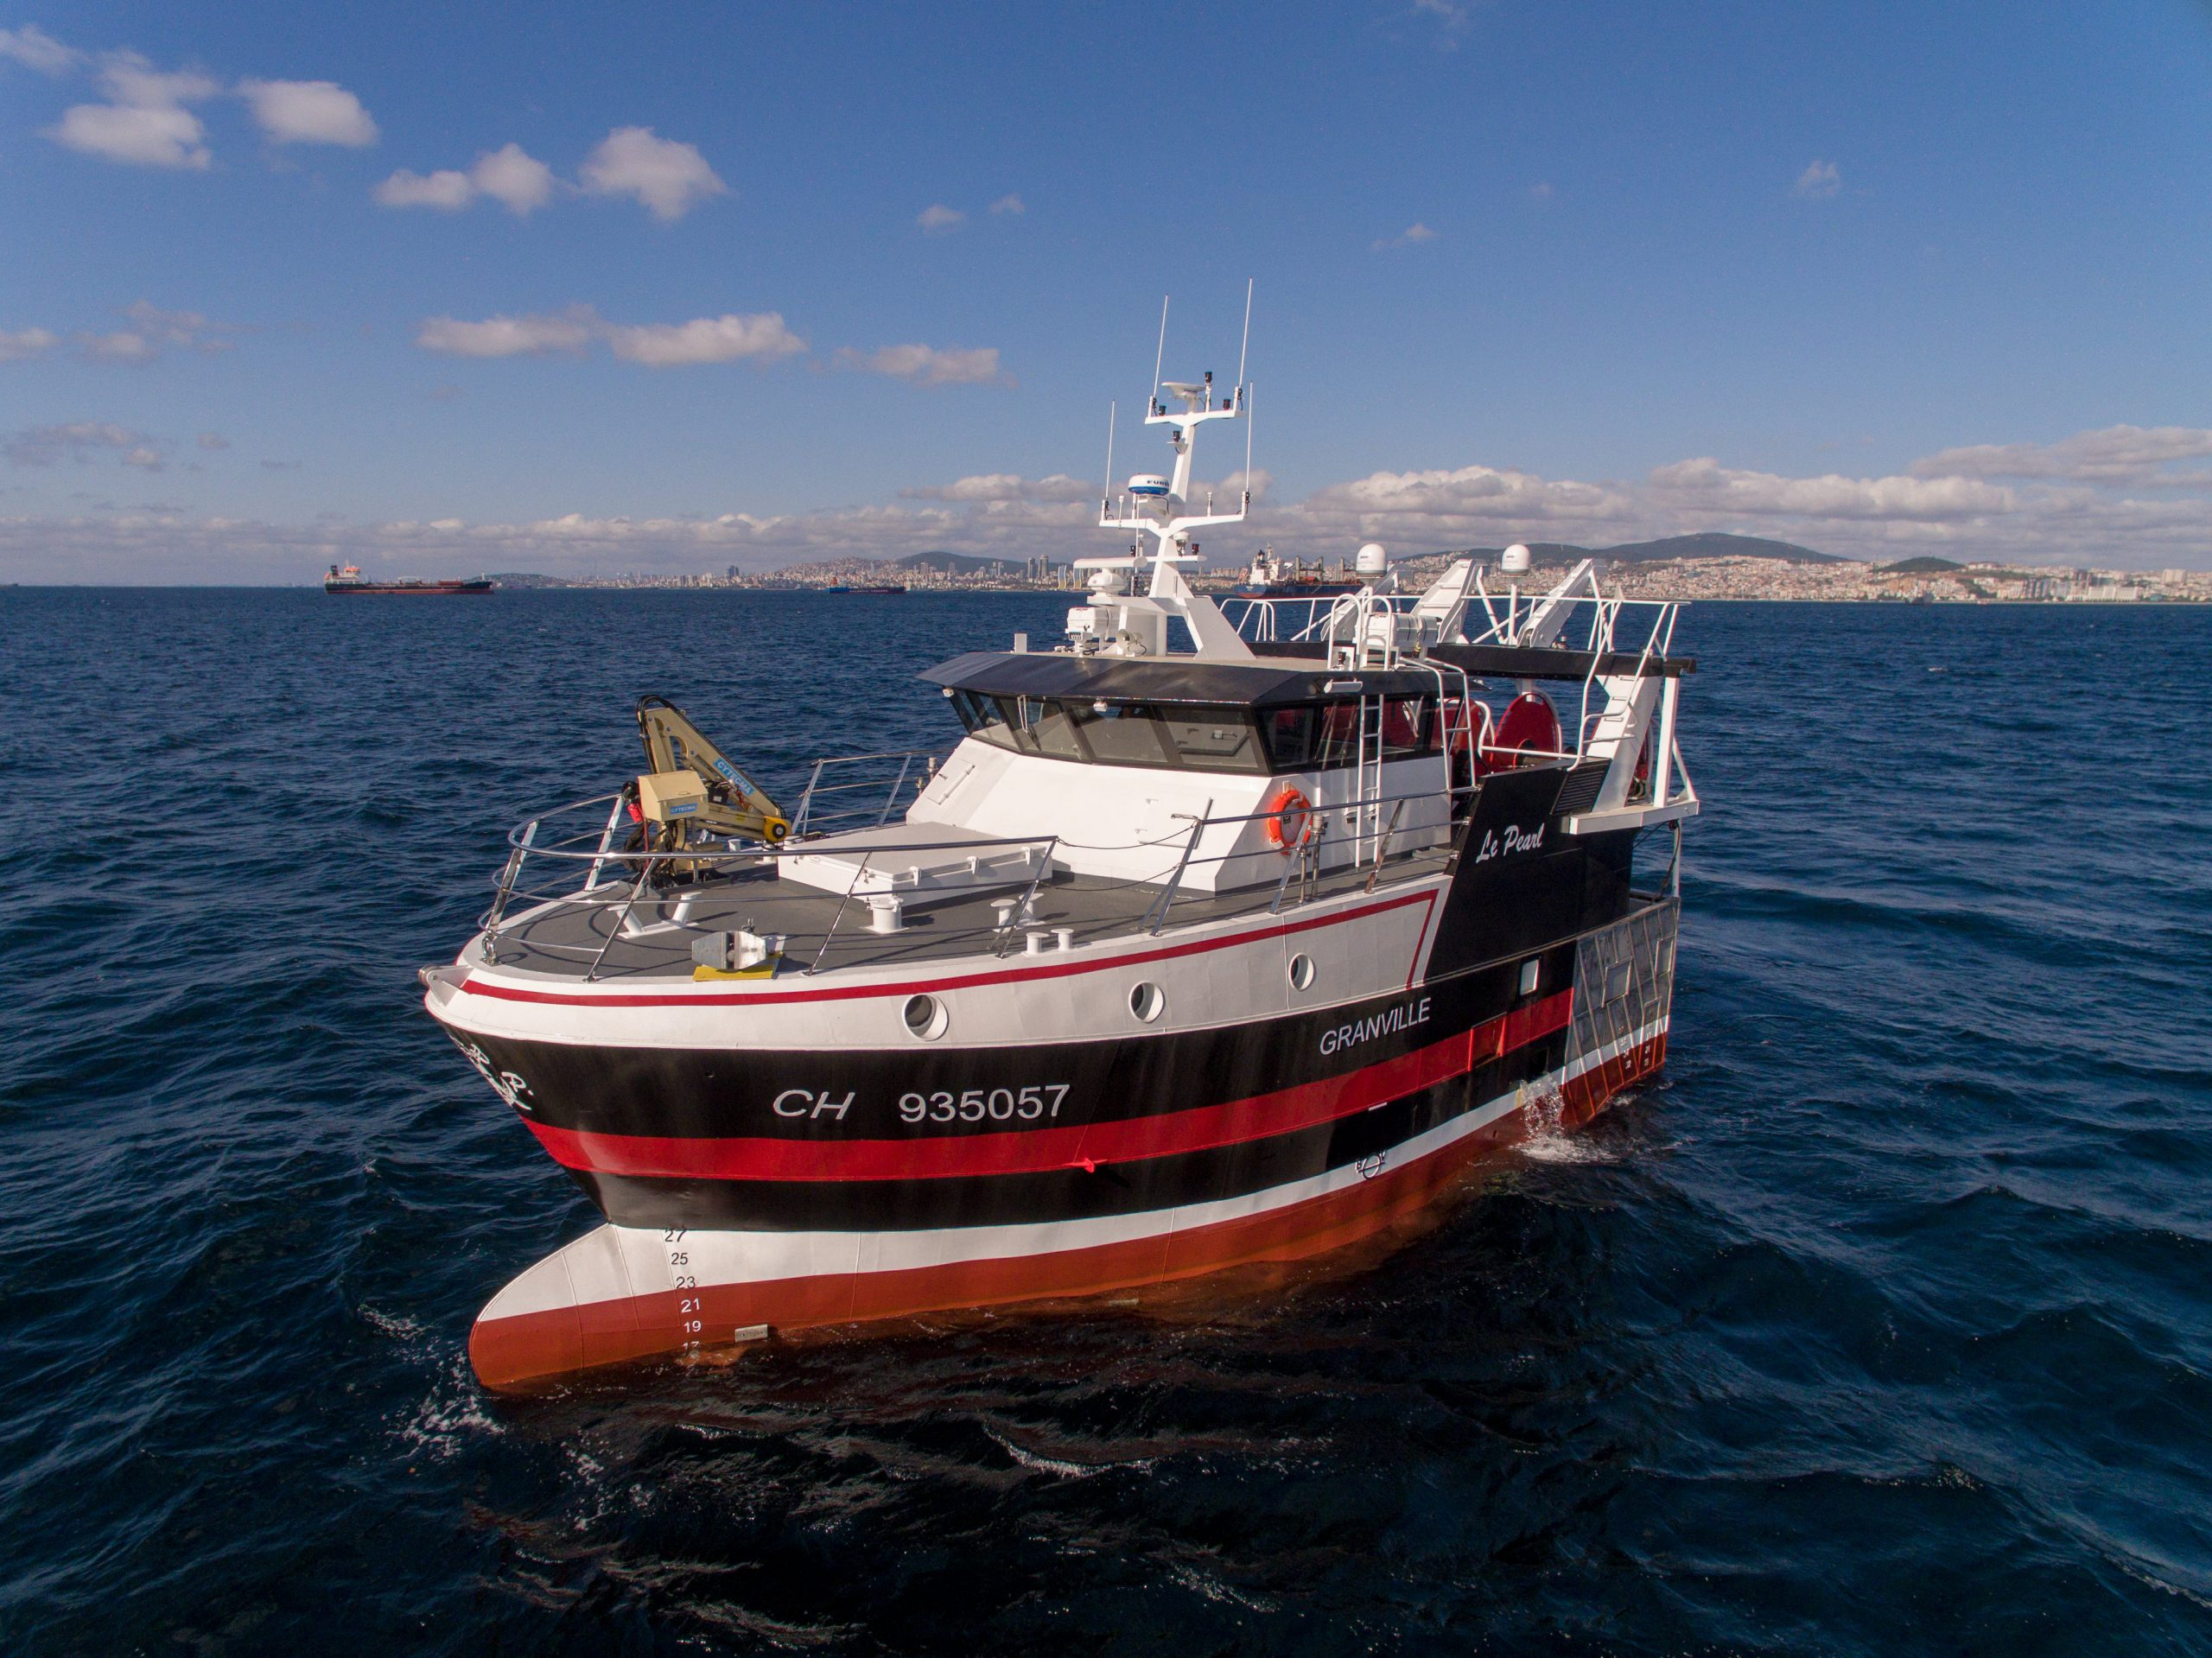 Nova FVT160 – Fishing Trawler